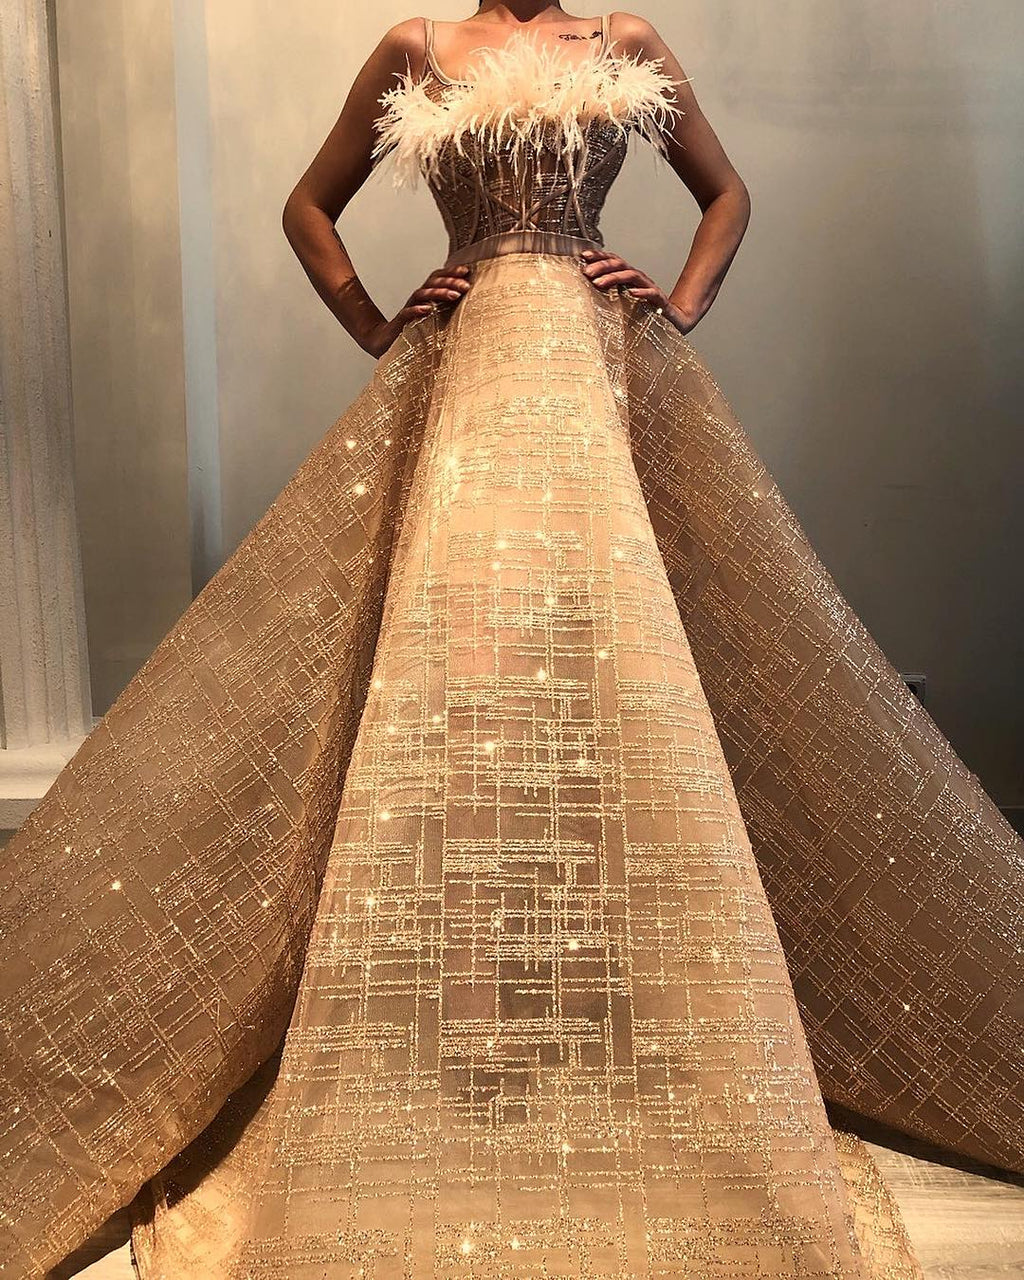 gowns for women | gowns for girls | gowns for sale | gowns for weddings | gowns for prom | gowns dresses | gowns beautiful gowns | gowns images | gowns design | gowns fashion show | gowns glittery